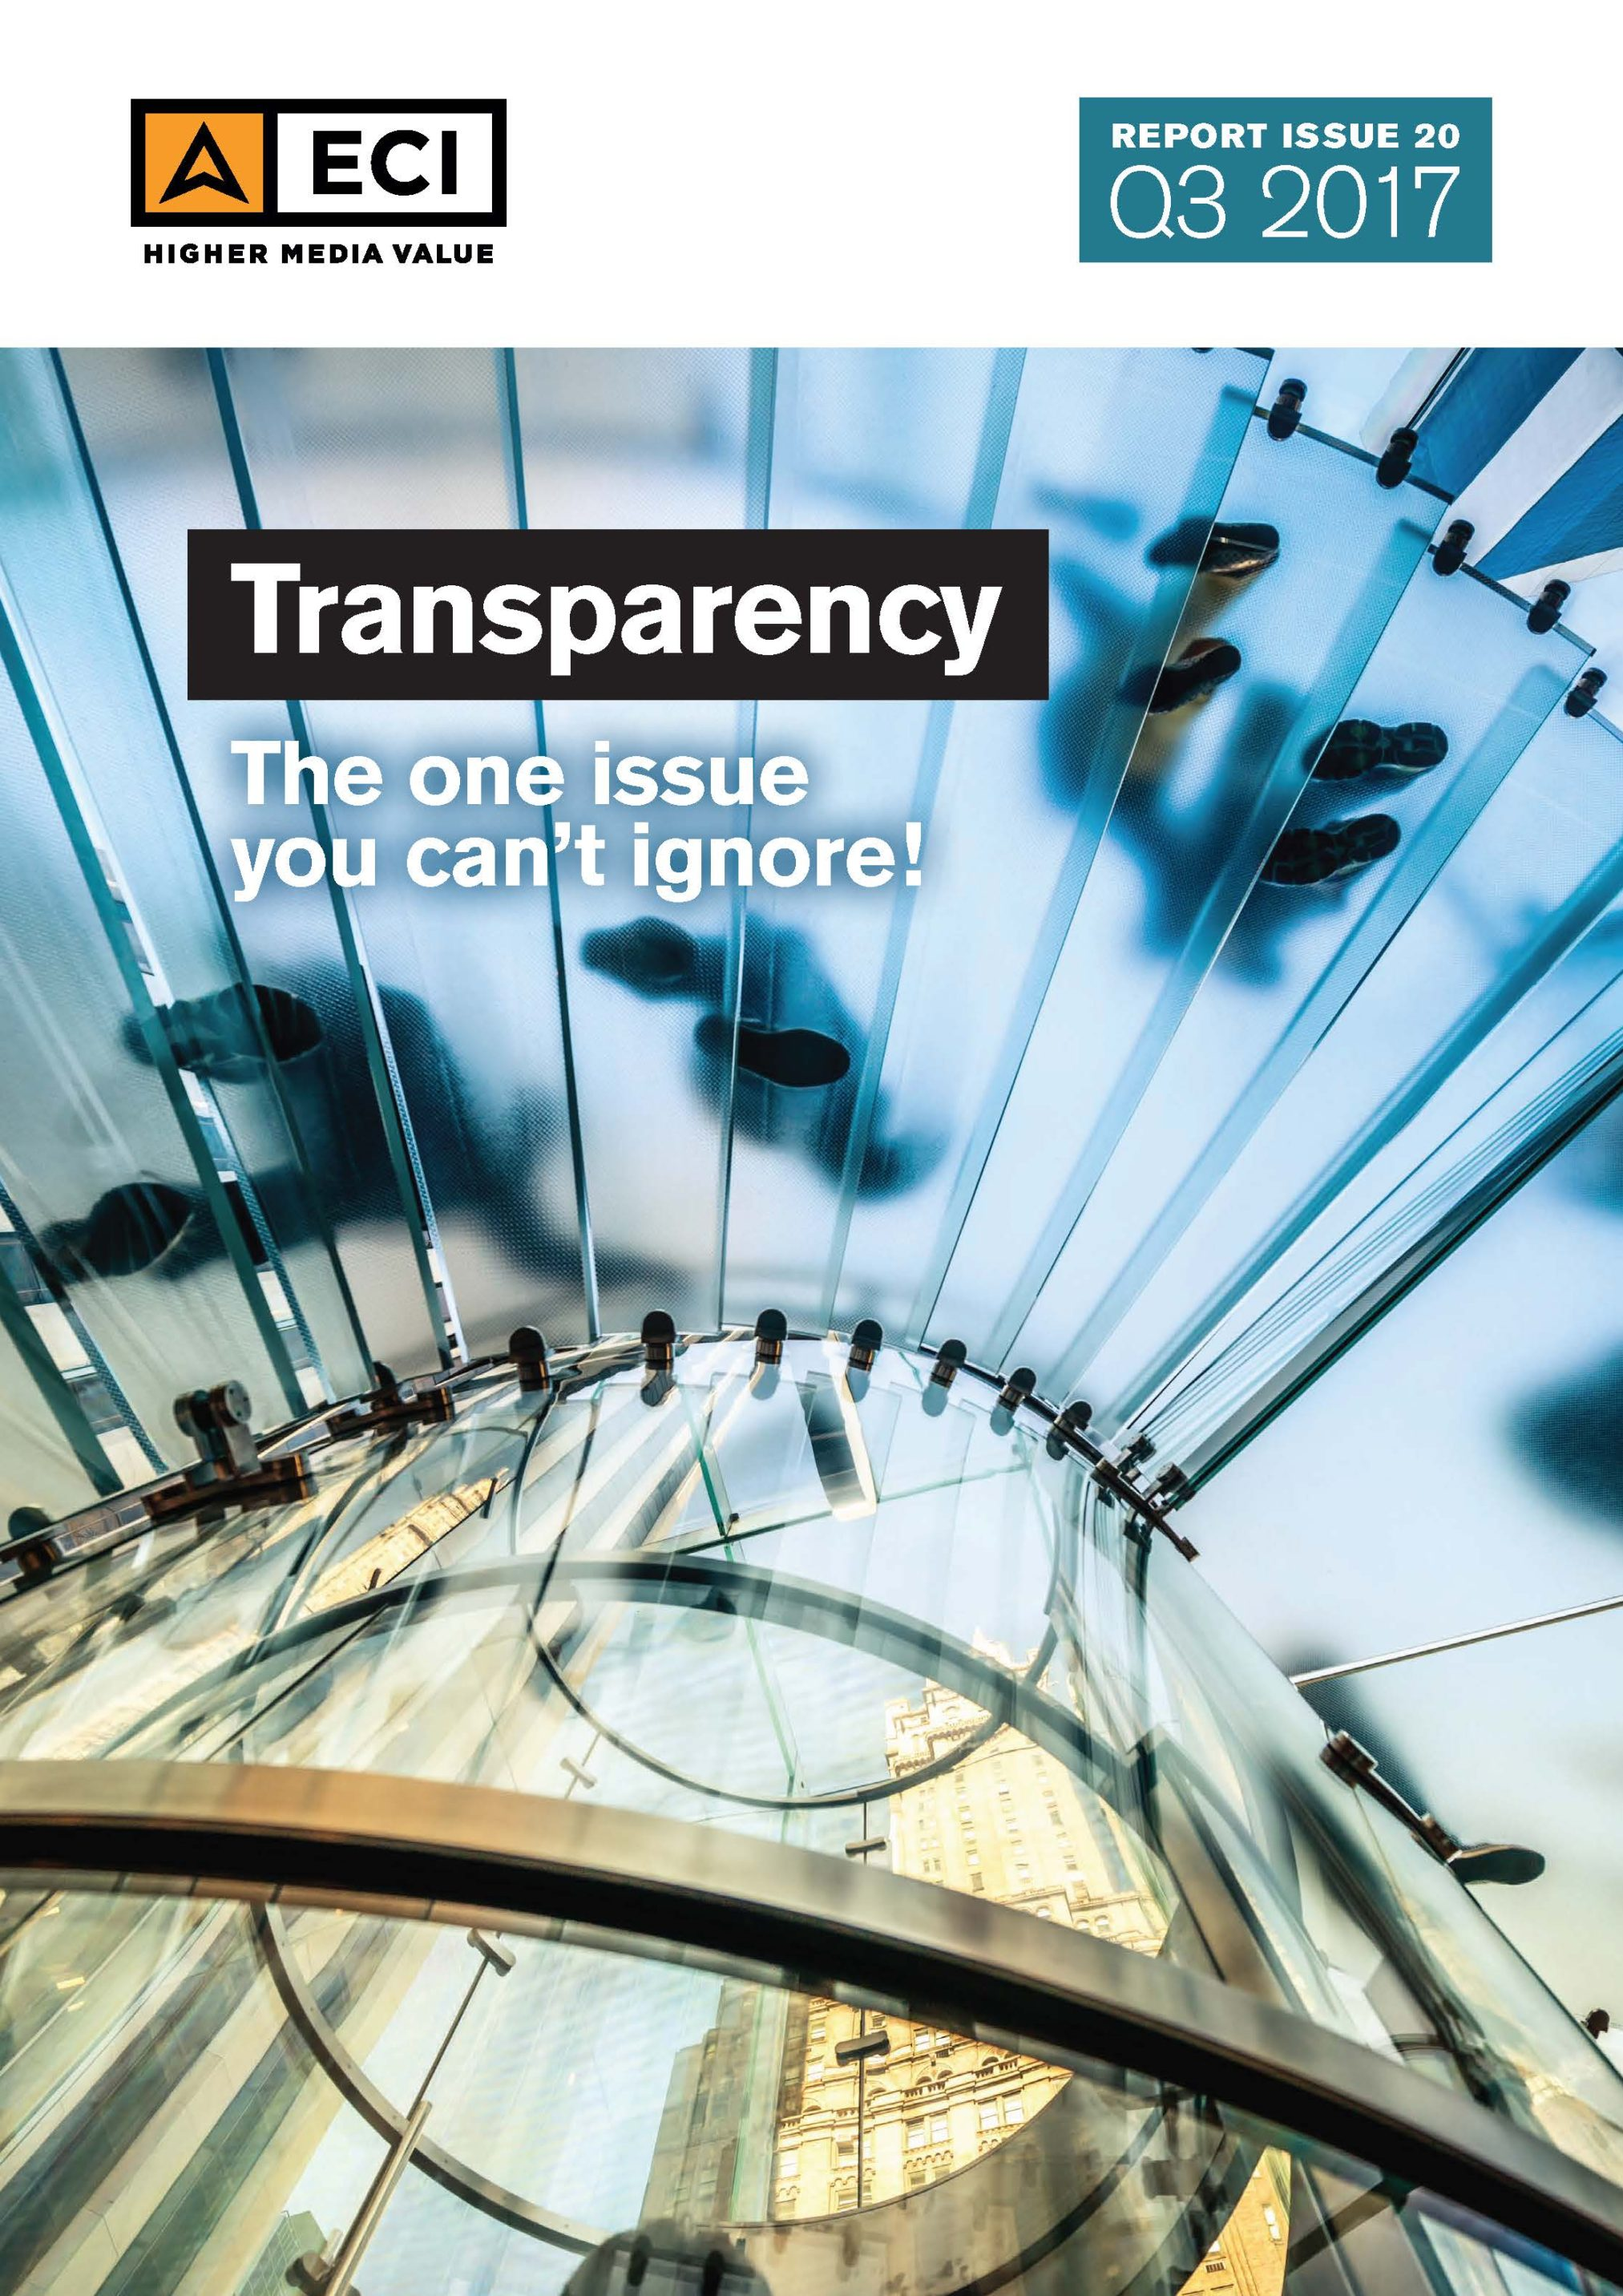 eci_report_issue-20-transparency-1